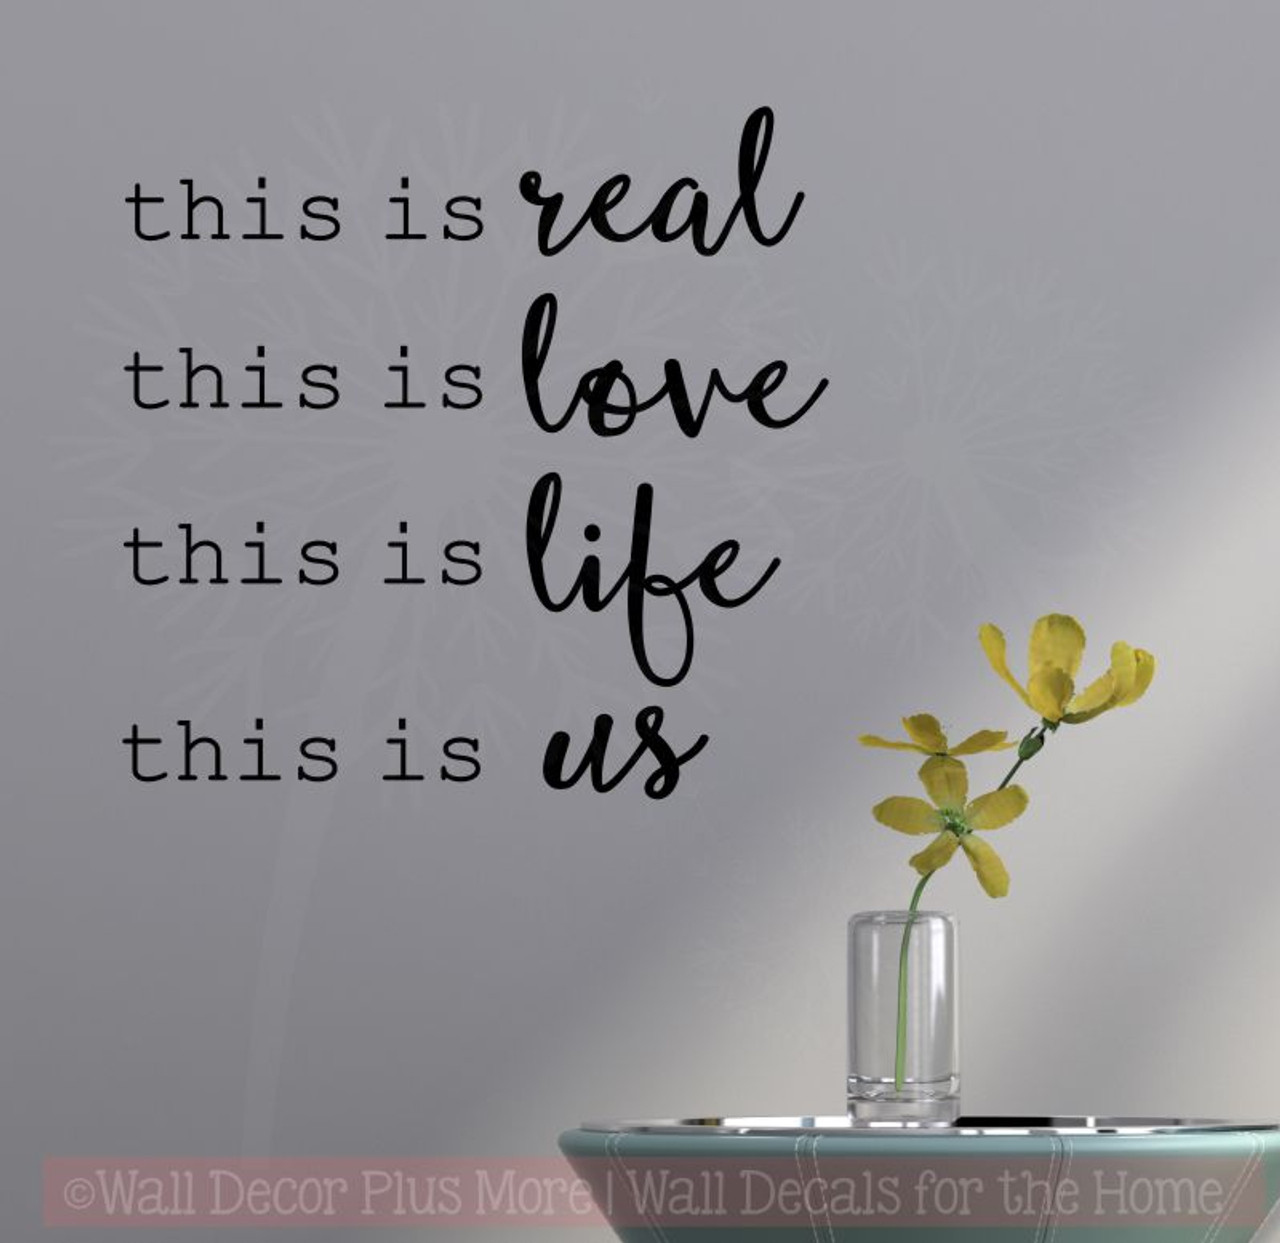 This Is Real This Is Us Home Decor Wall Decal Stickers Bedroom ...